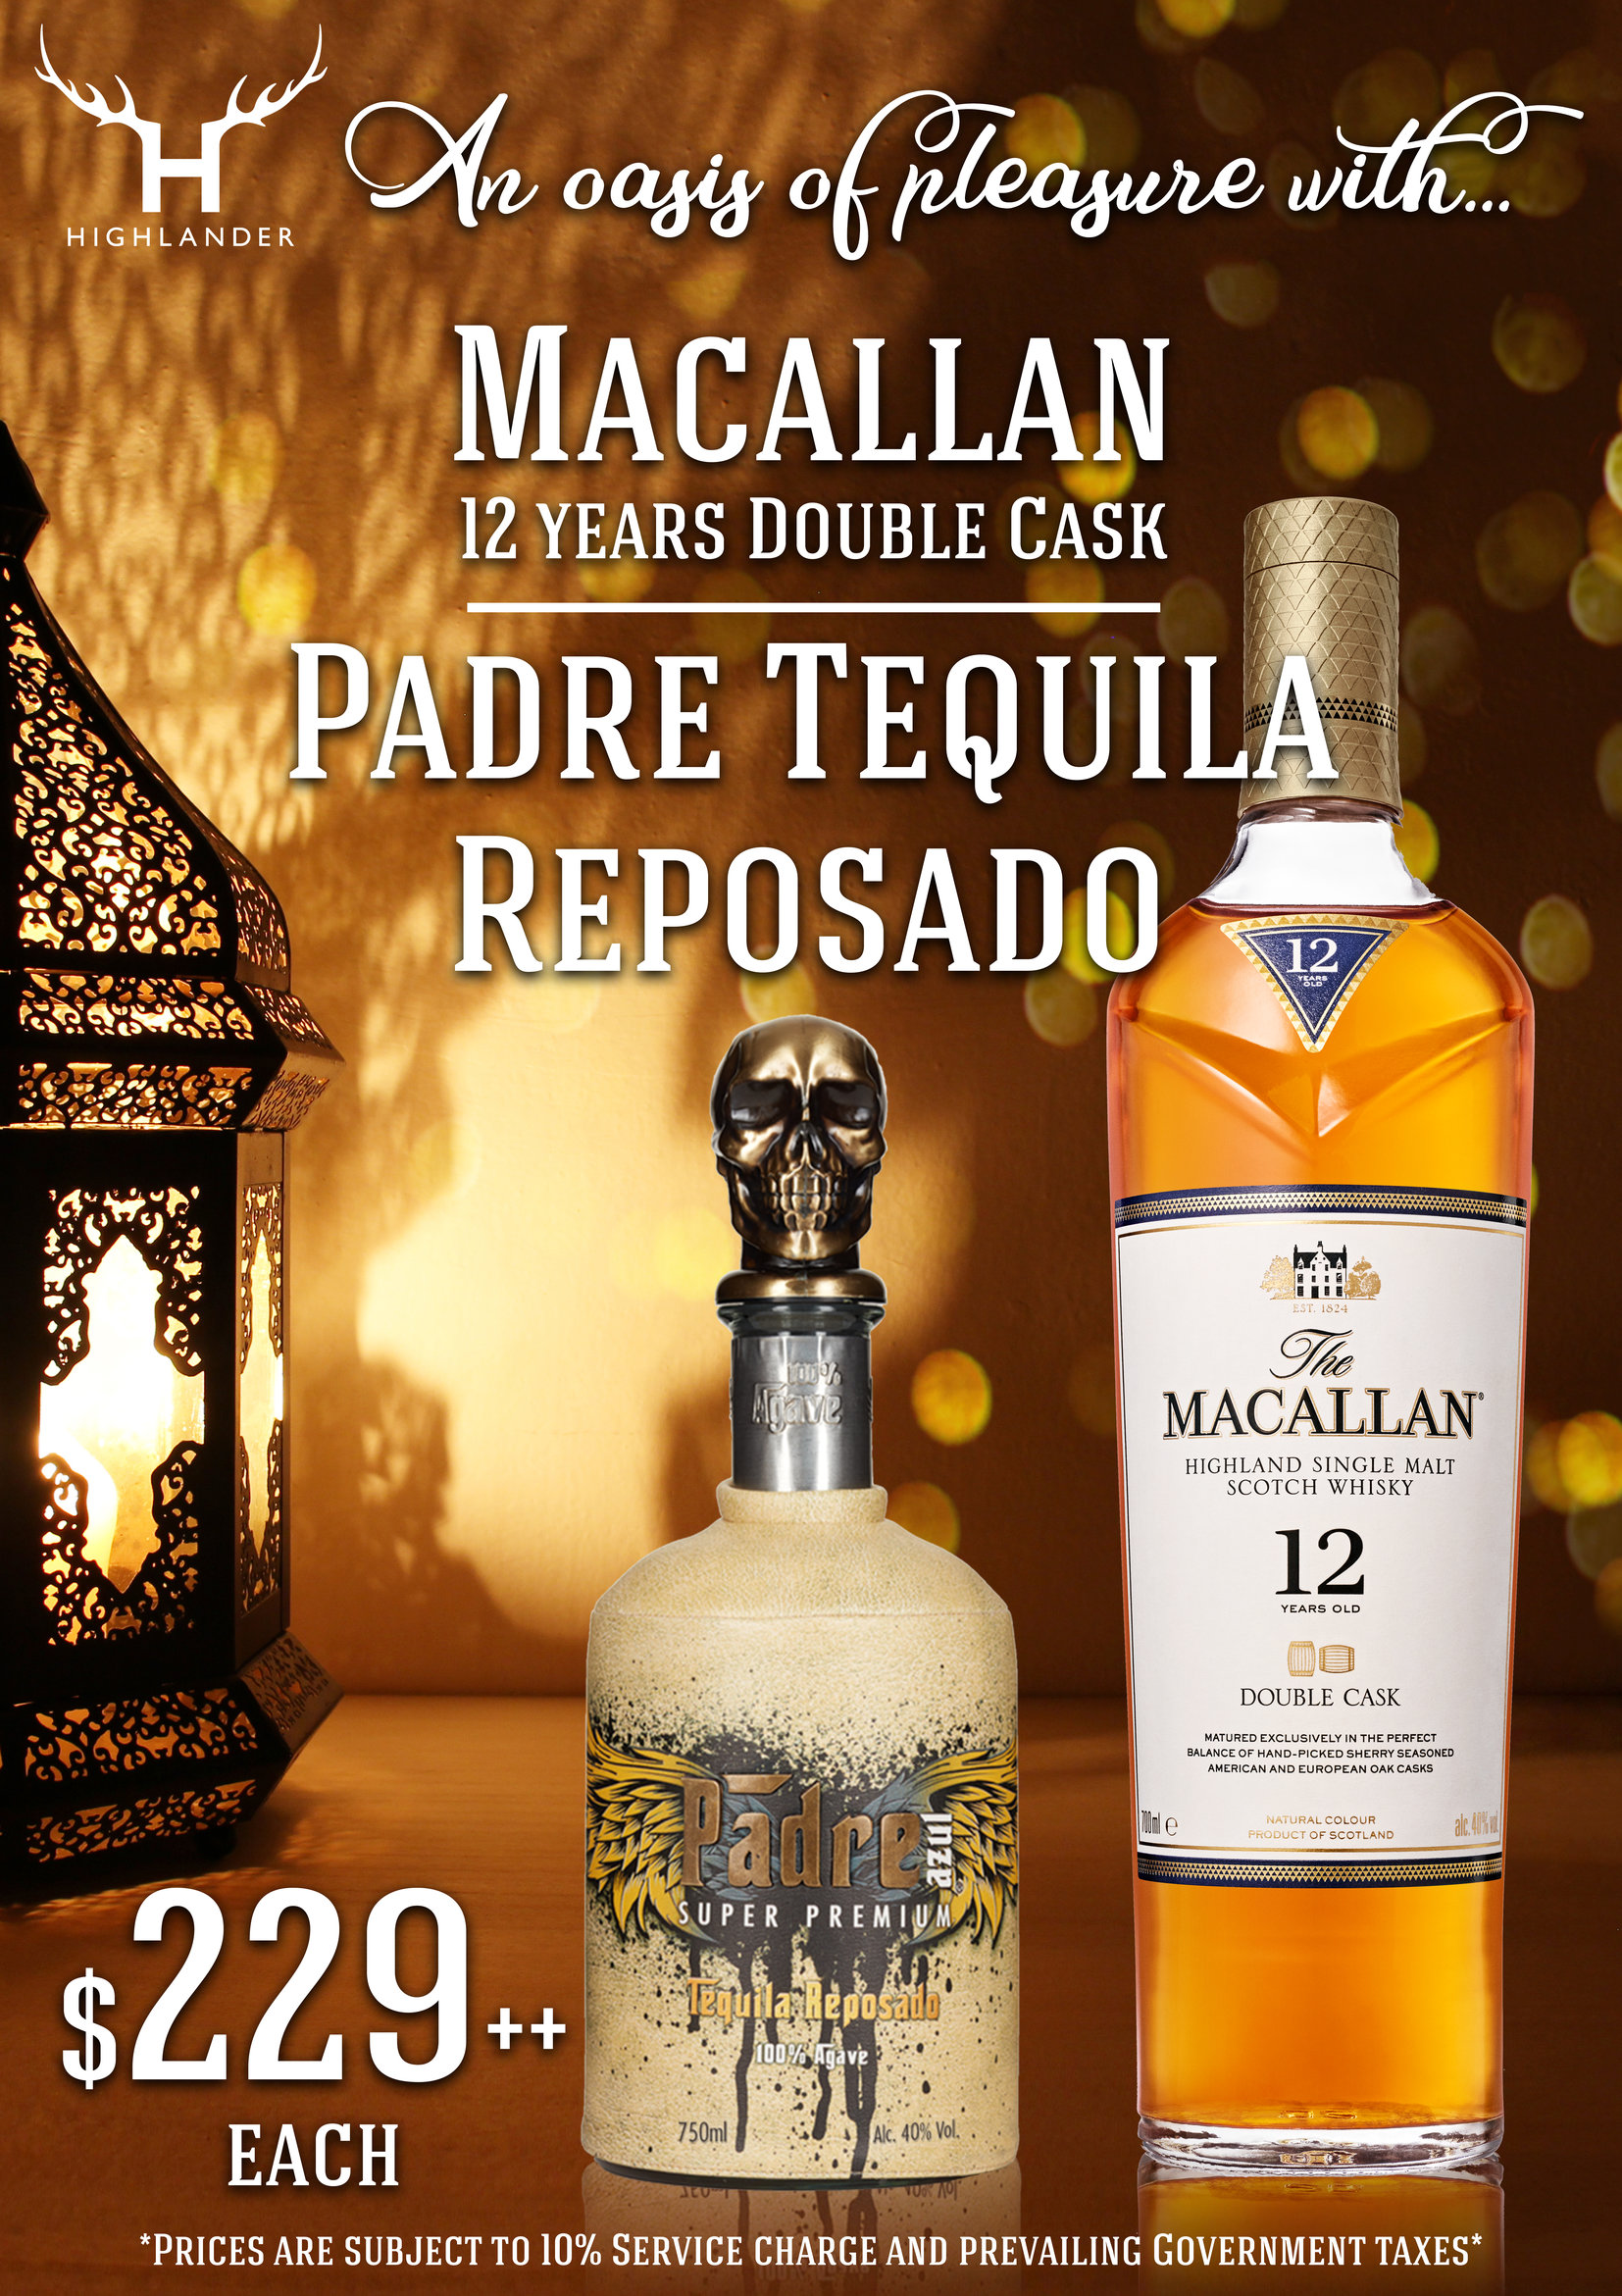 Macallan and Pedro